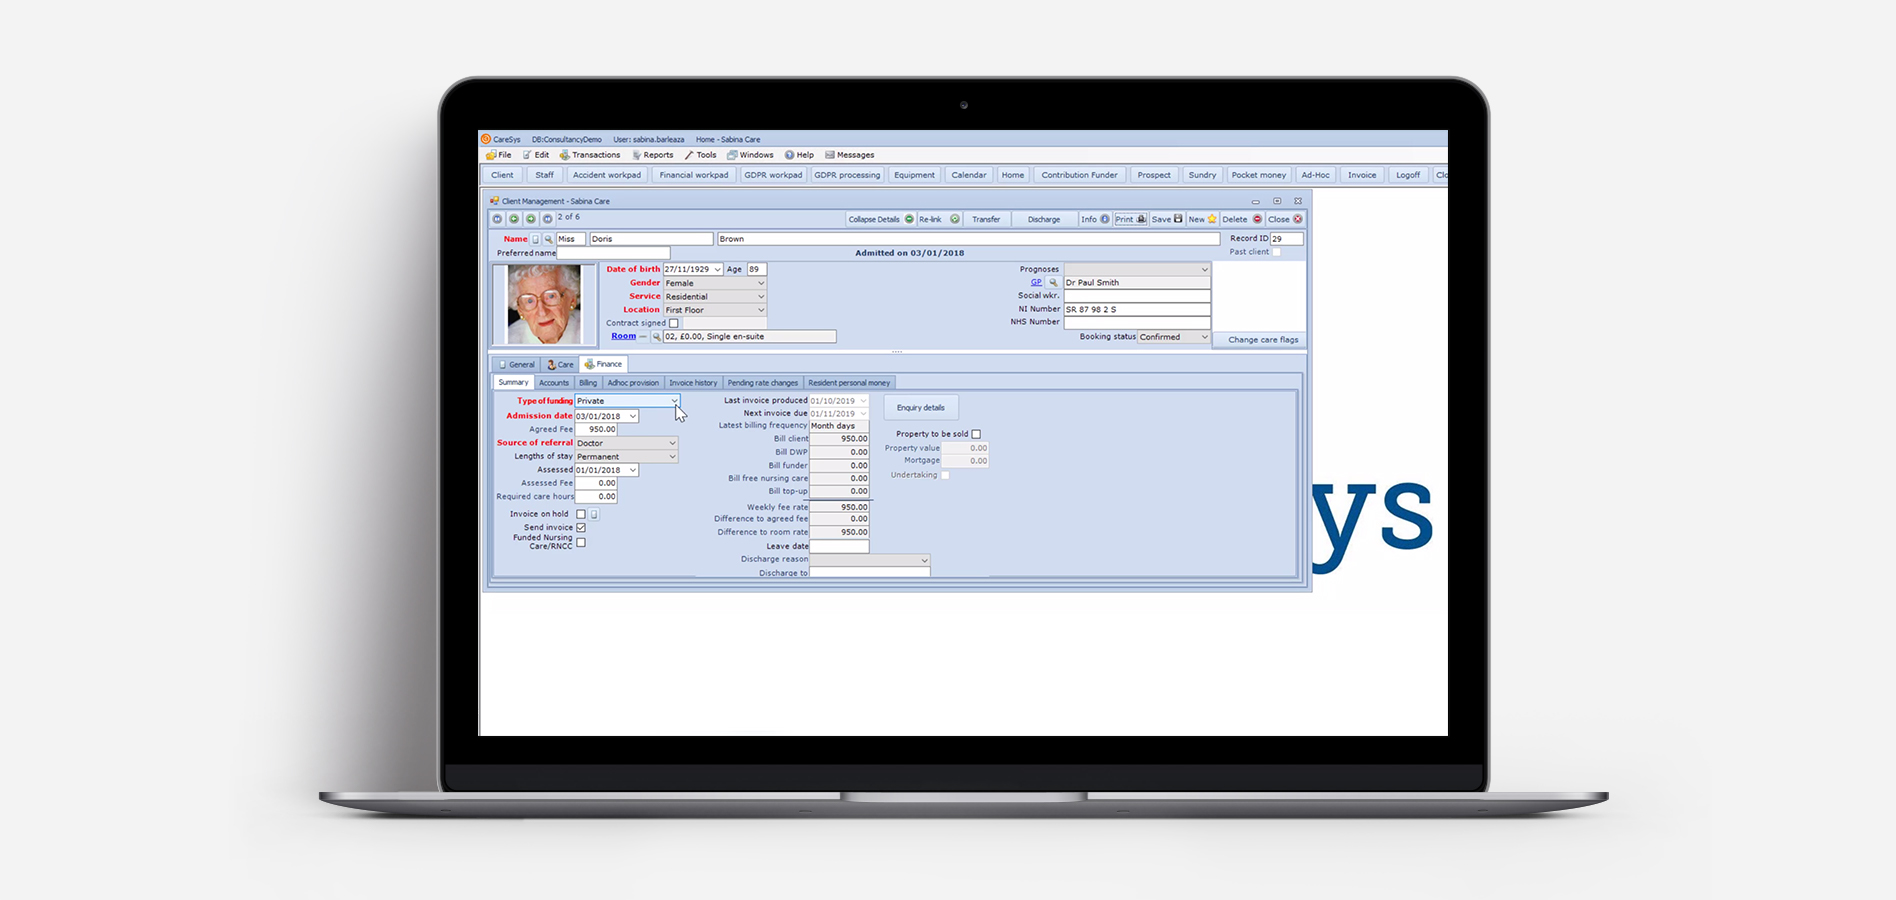 Caresys Desktop View